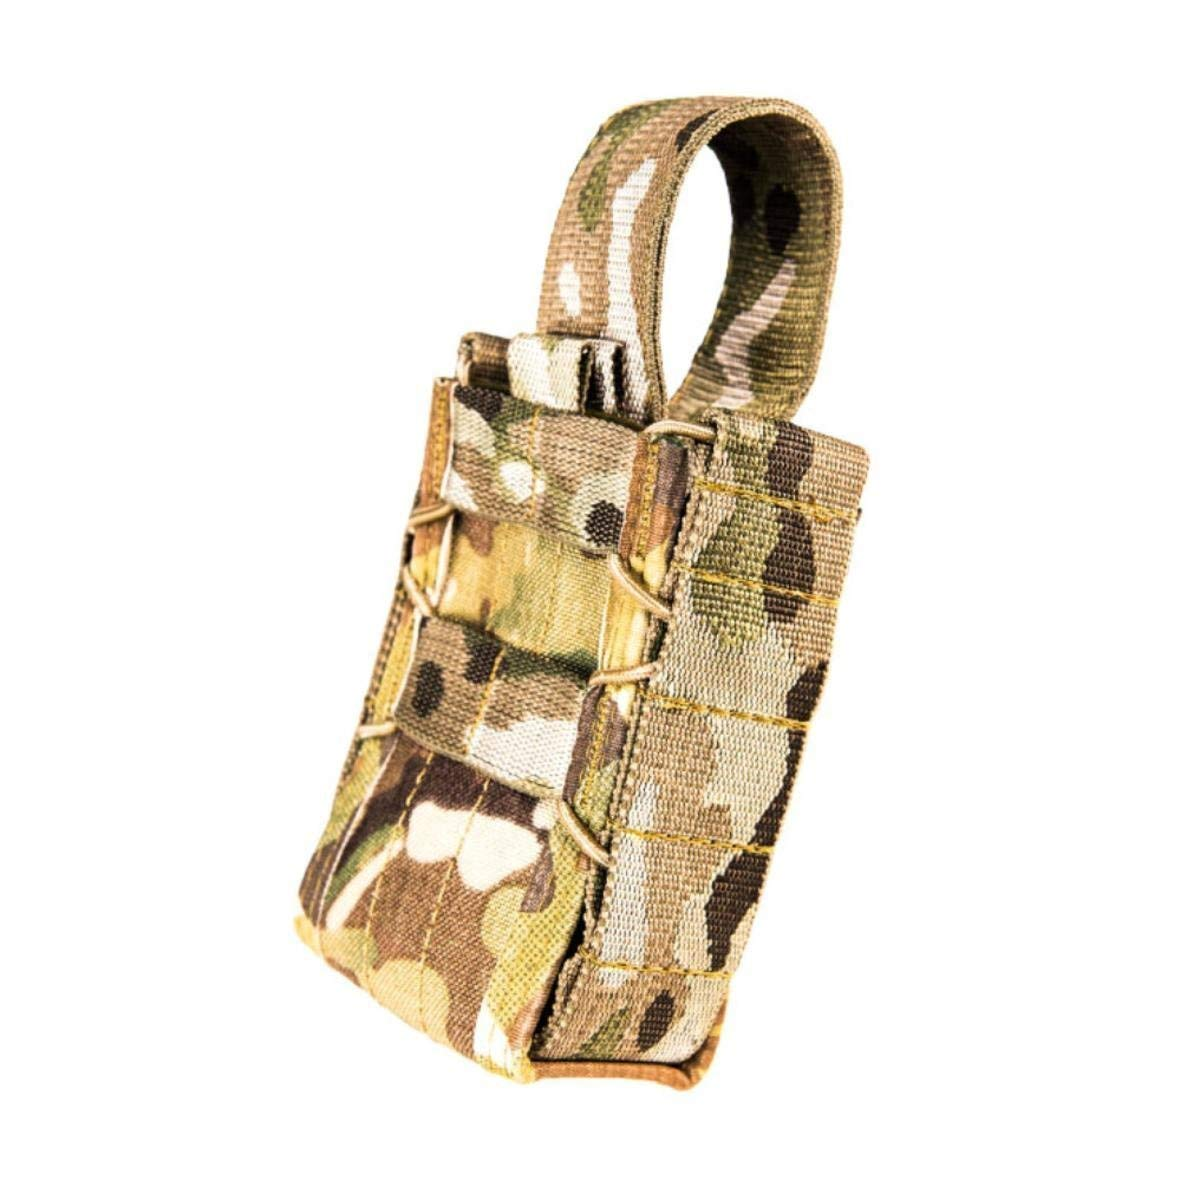 High Speed Gear Stun Gun Taco Holster | Fits X26 and X2 Tasers | MOLLE Compatible for PALS, Battle Belts and More (Multicam) by High Speed Gear